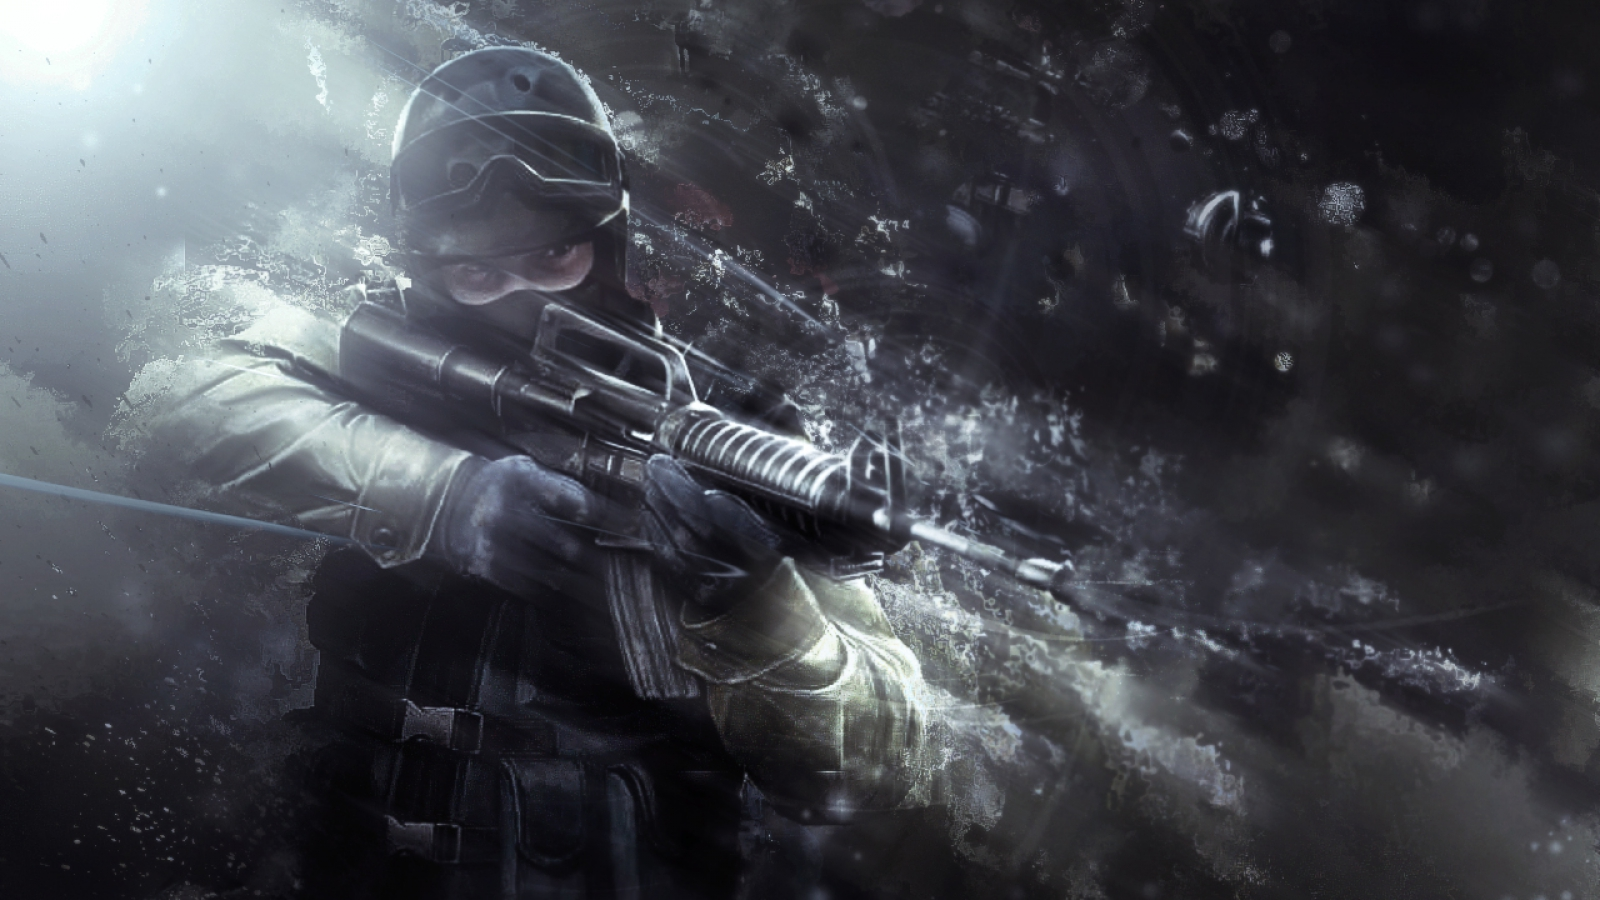 Counter strike source wallpaper and background image 1600x900 video game counter strike wallpaper voltagebd Choice Image